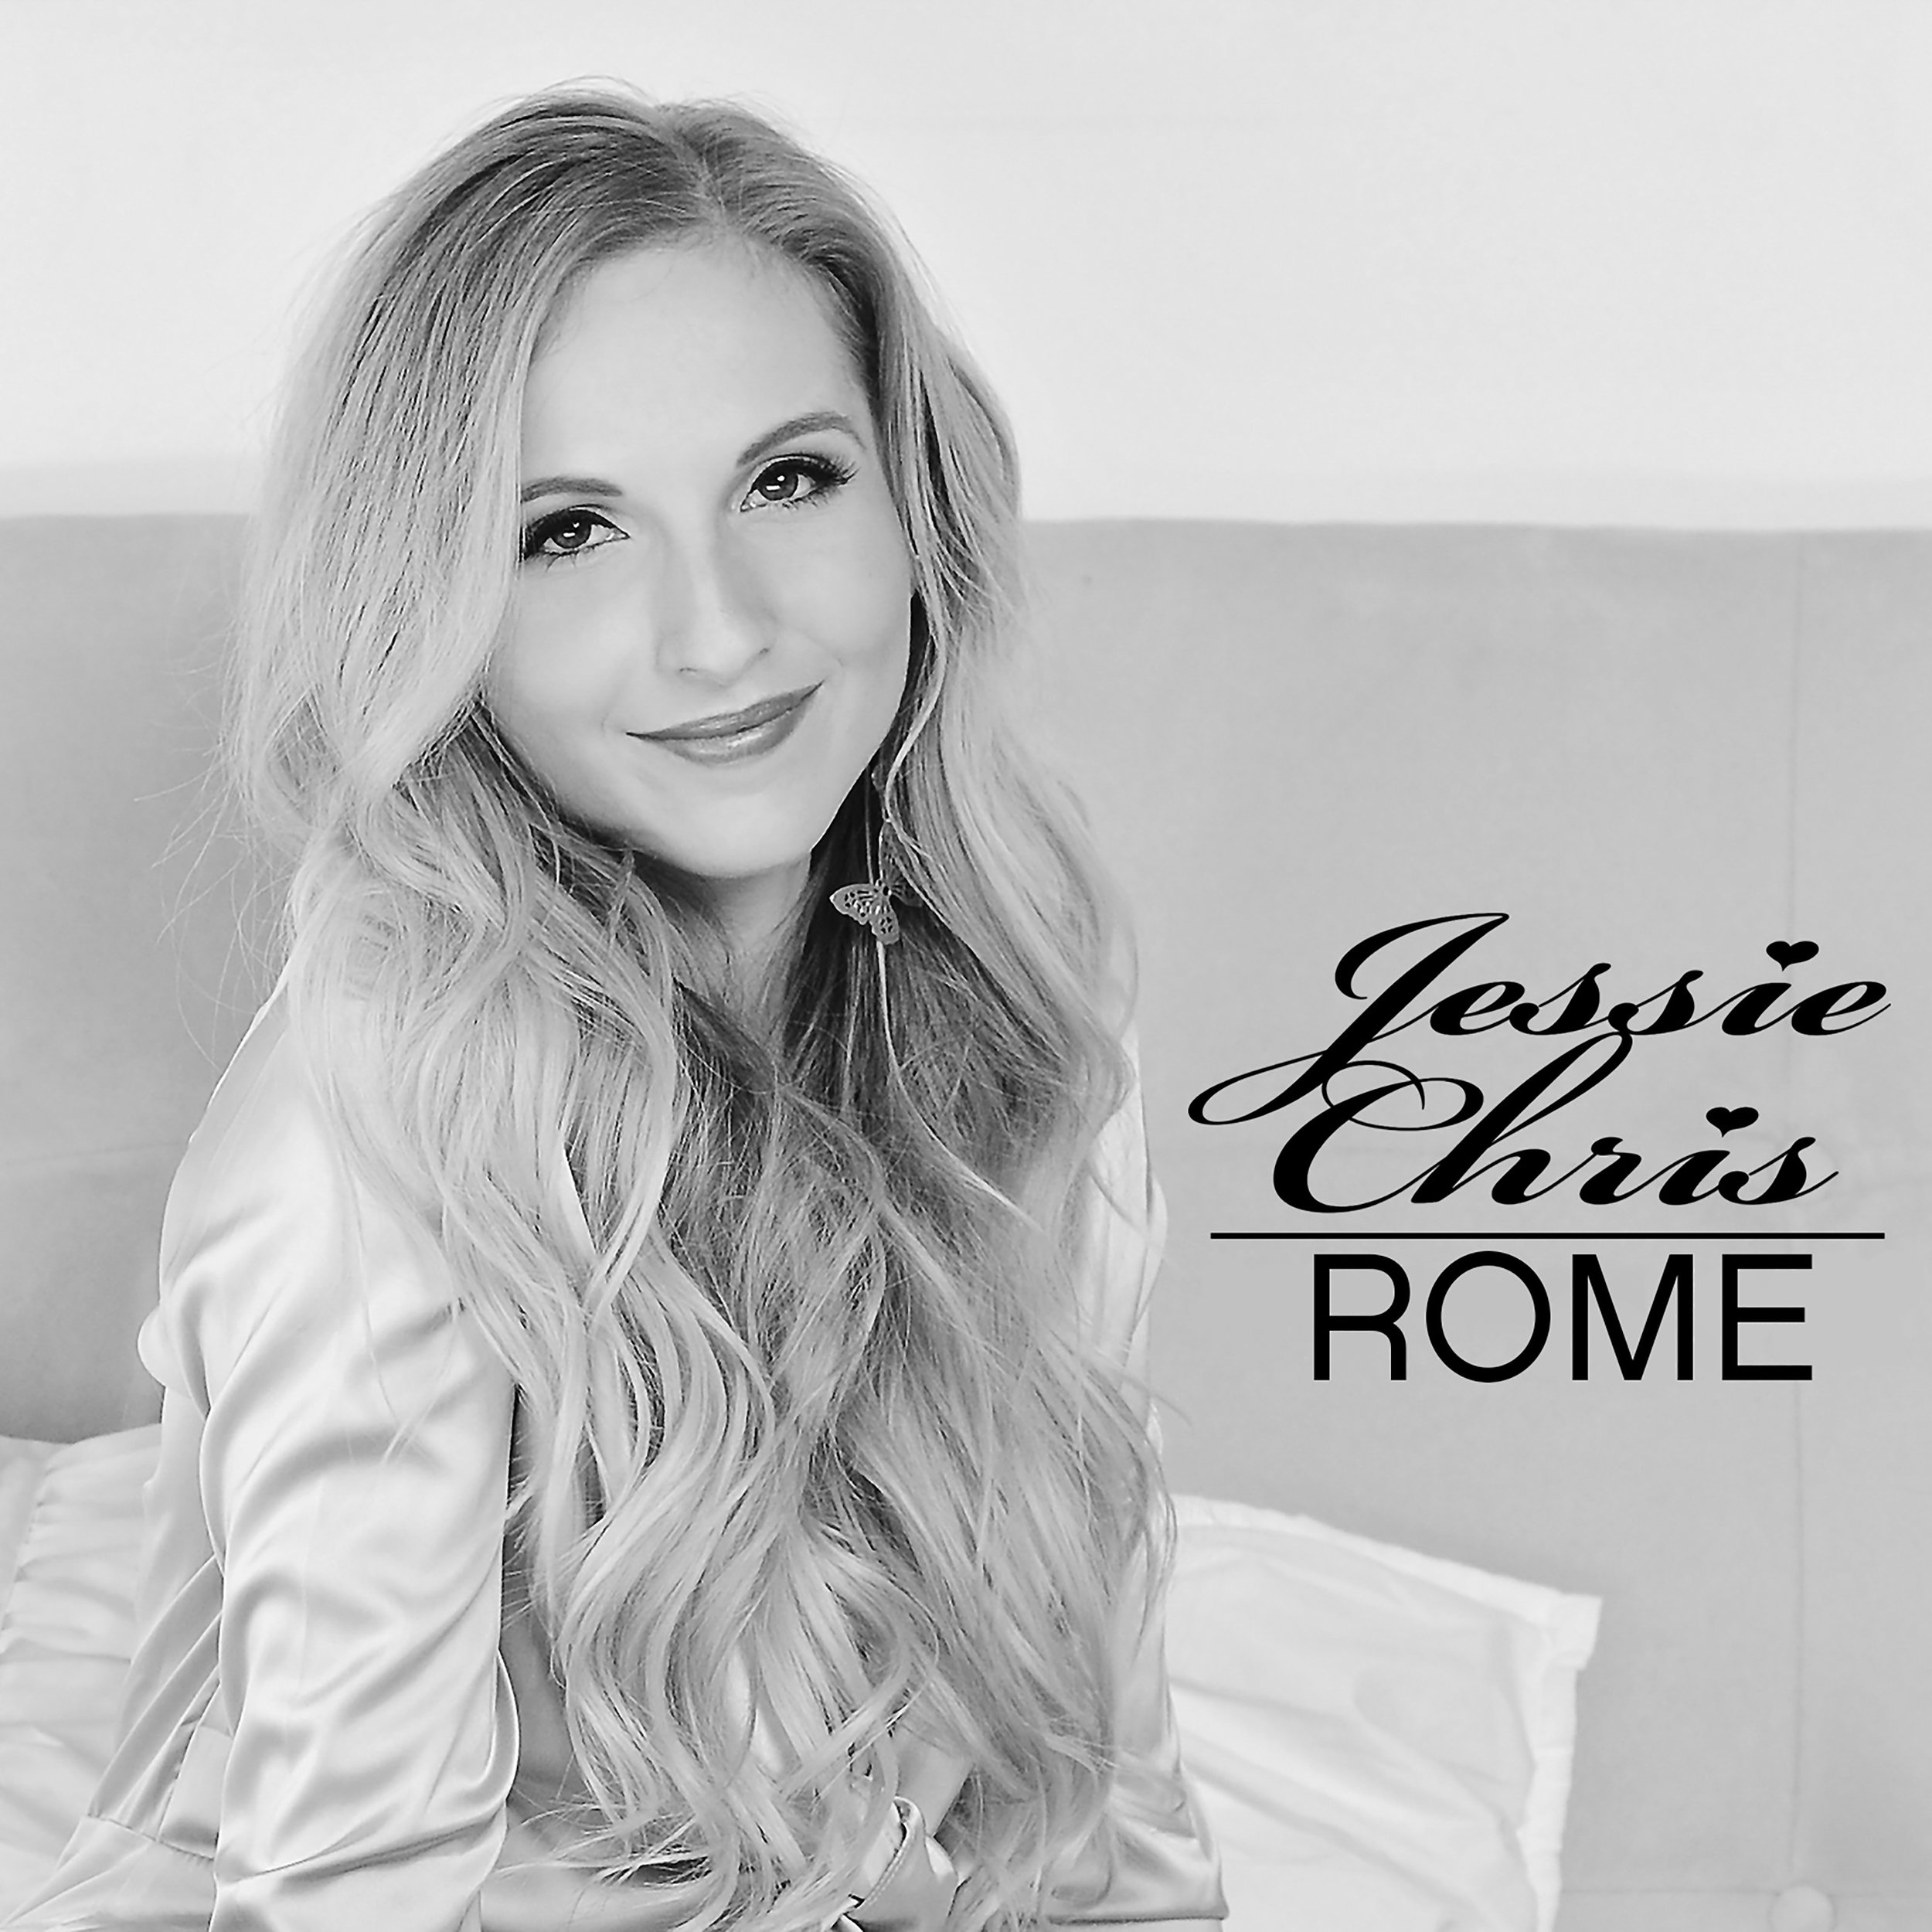 Jessie Rome and Template 2_Original BW (2).jpg